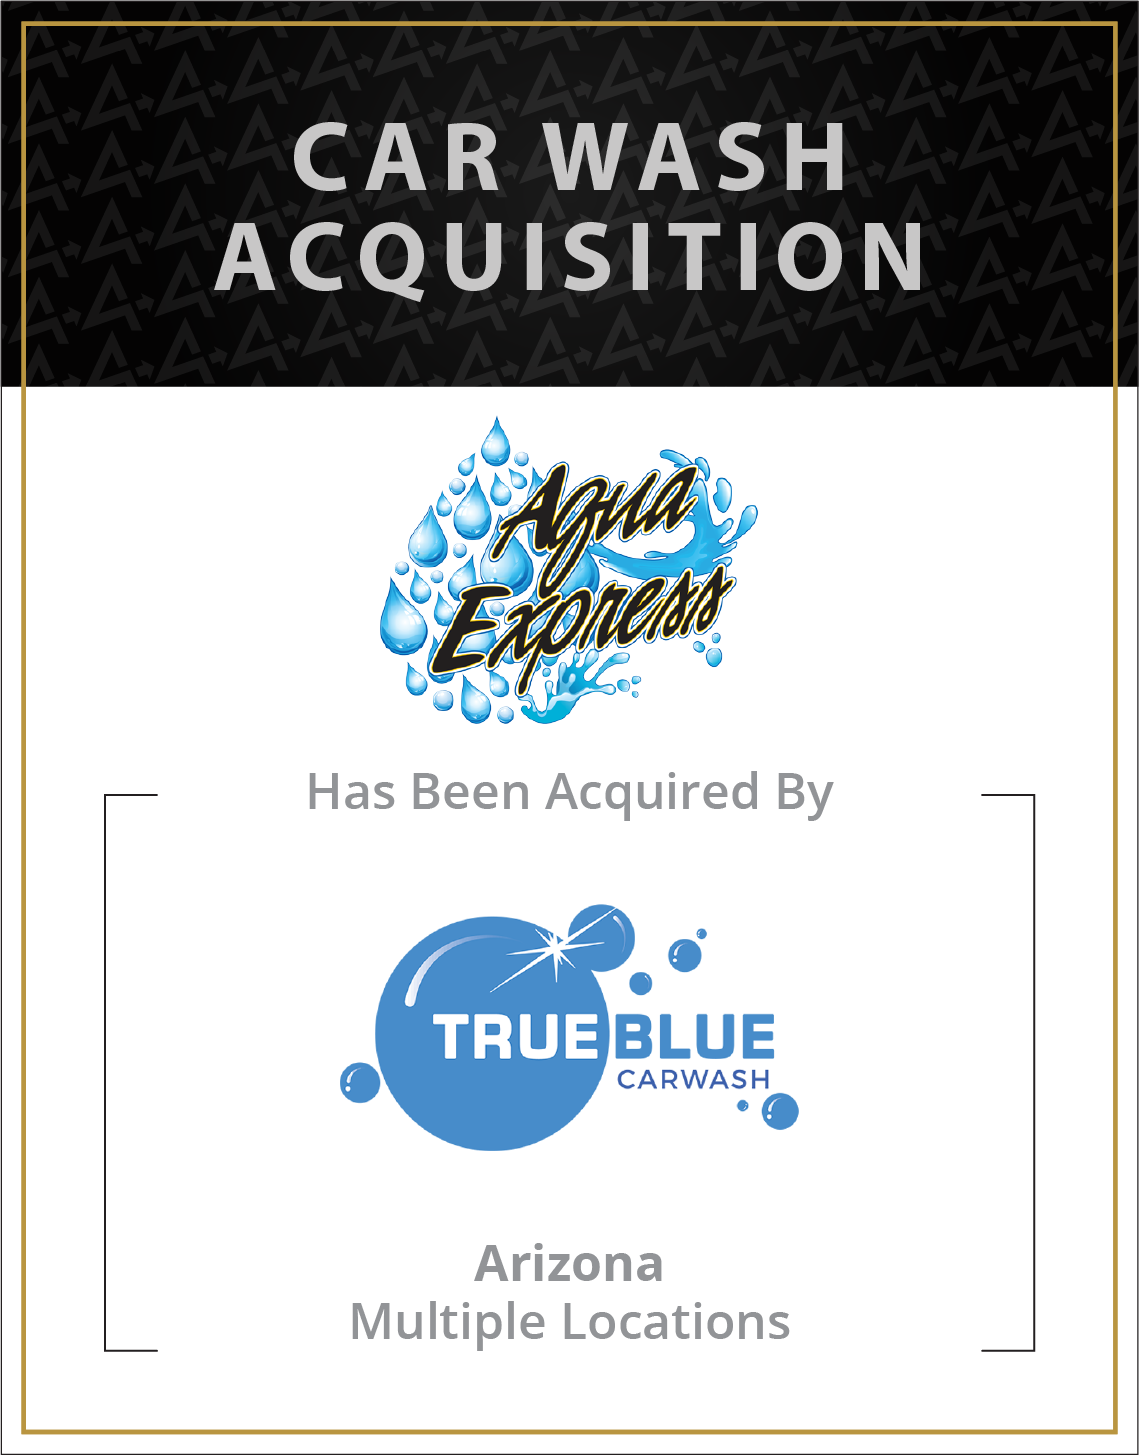 Aqua Express has been acquired by True Blue Car Wash